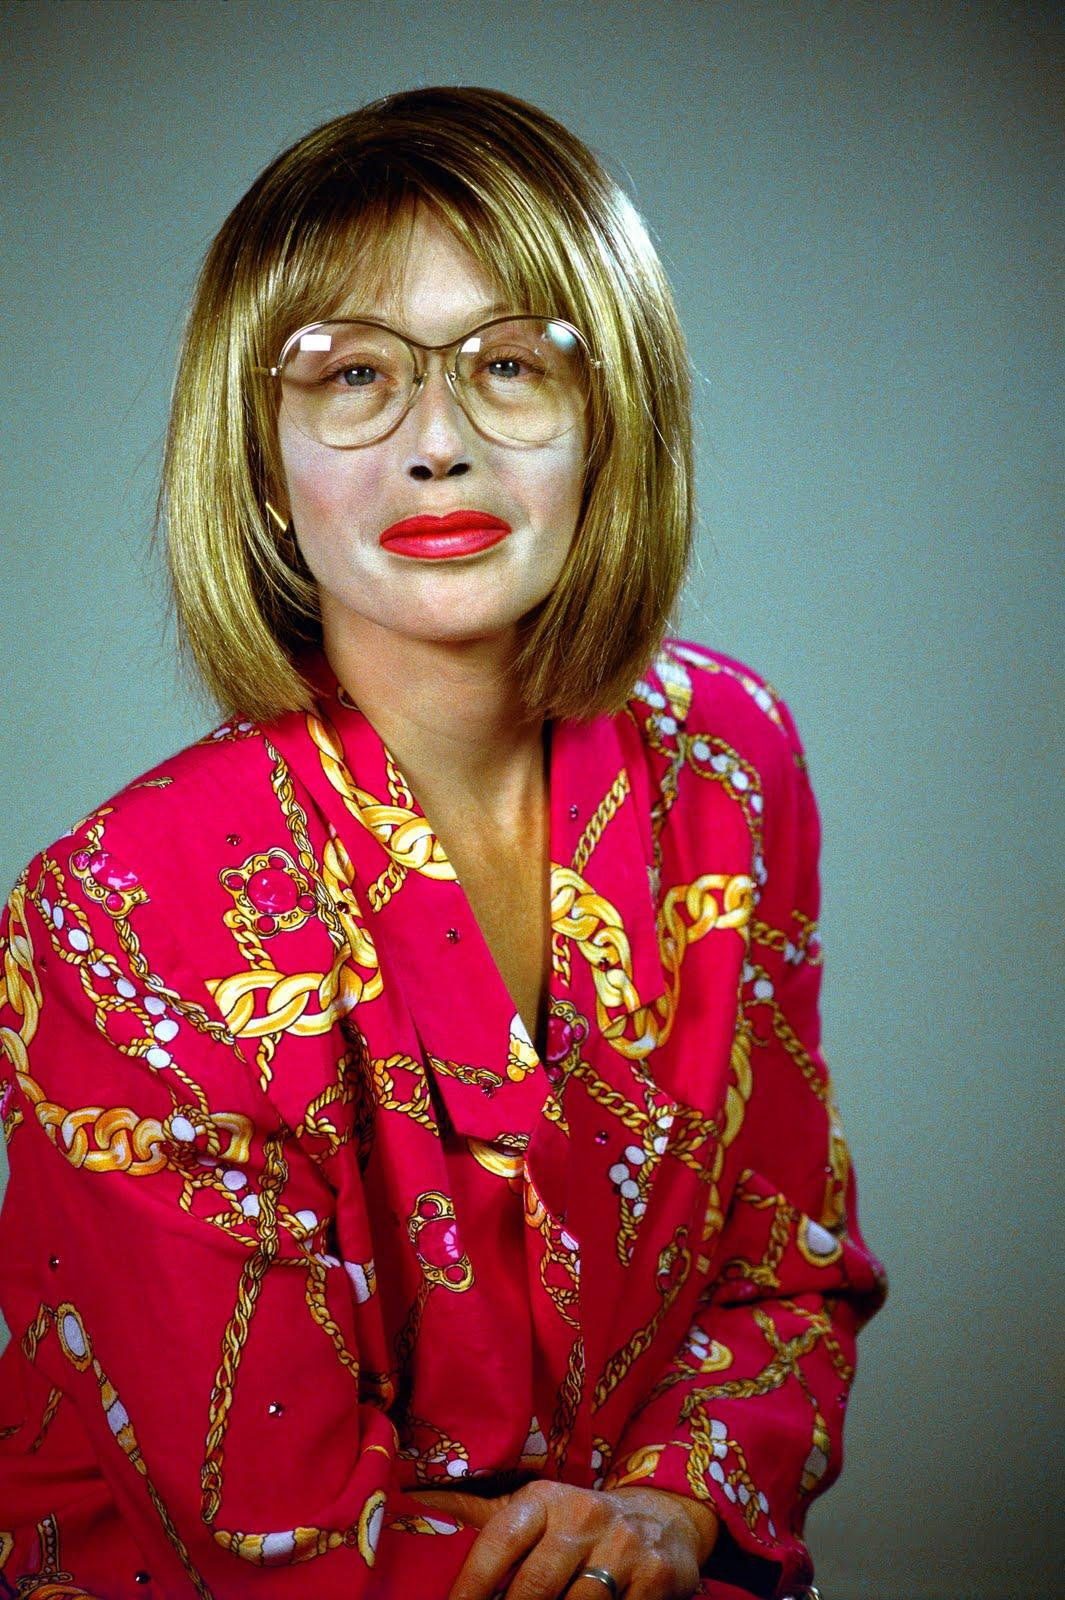 The Reel FotoCindy Sherman Photography Self Portraits